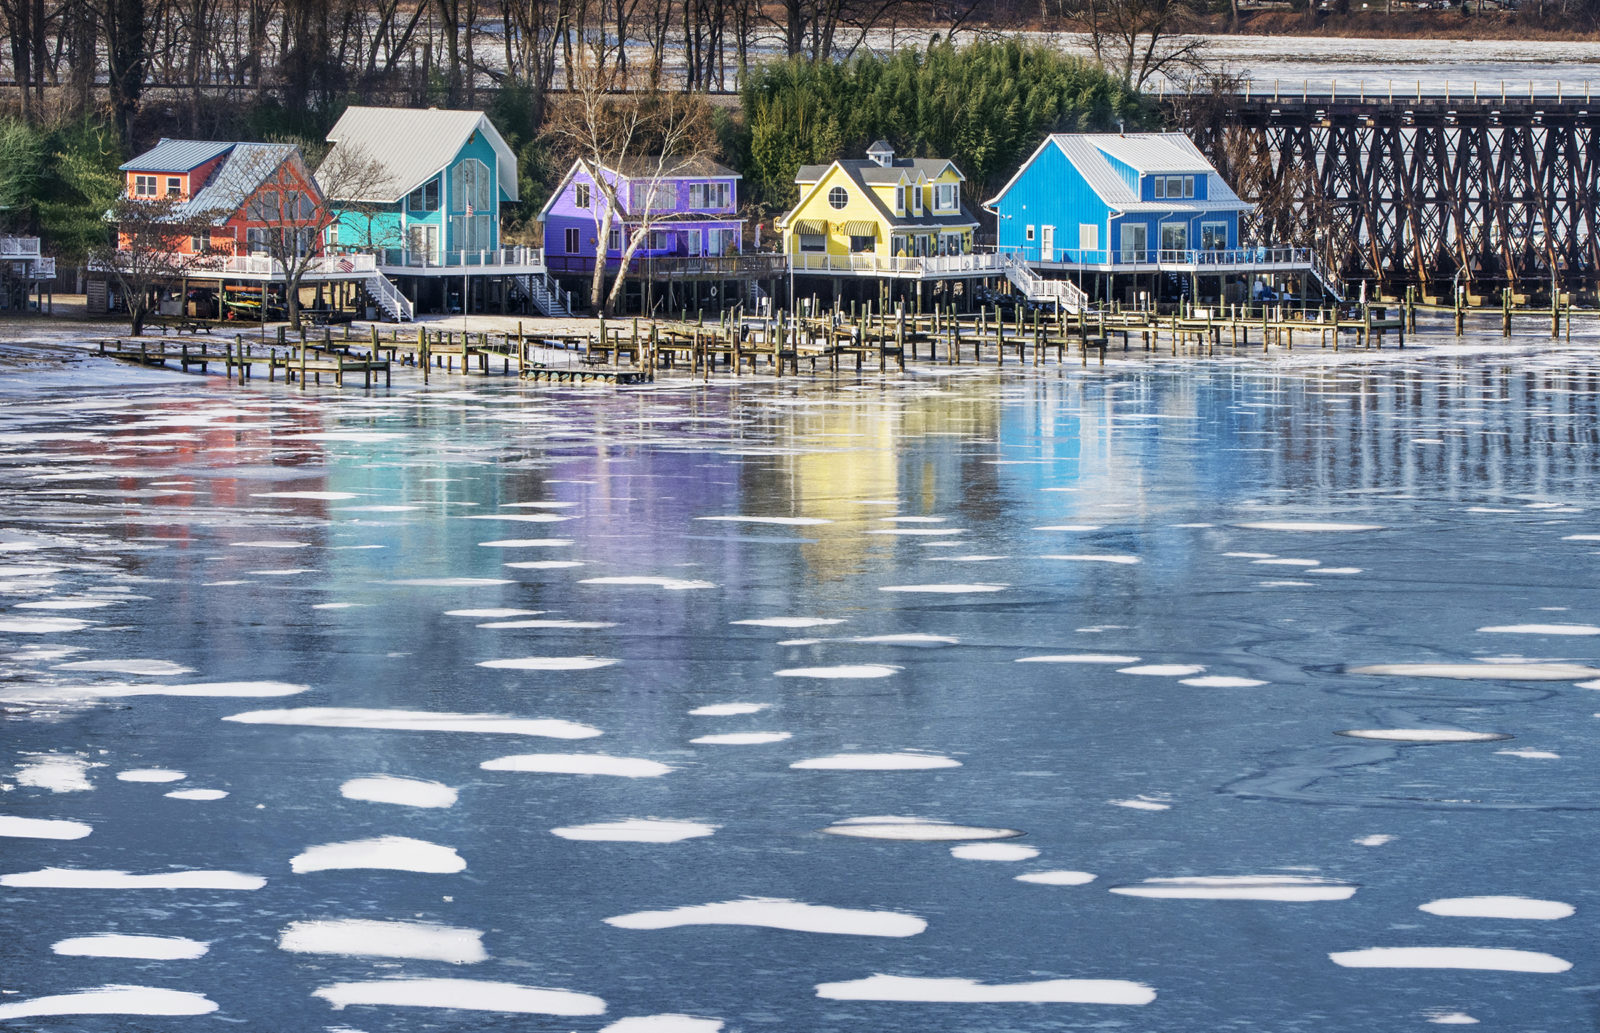 Colorful Homes on Frozen River